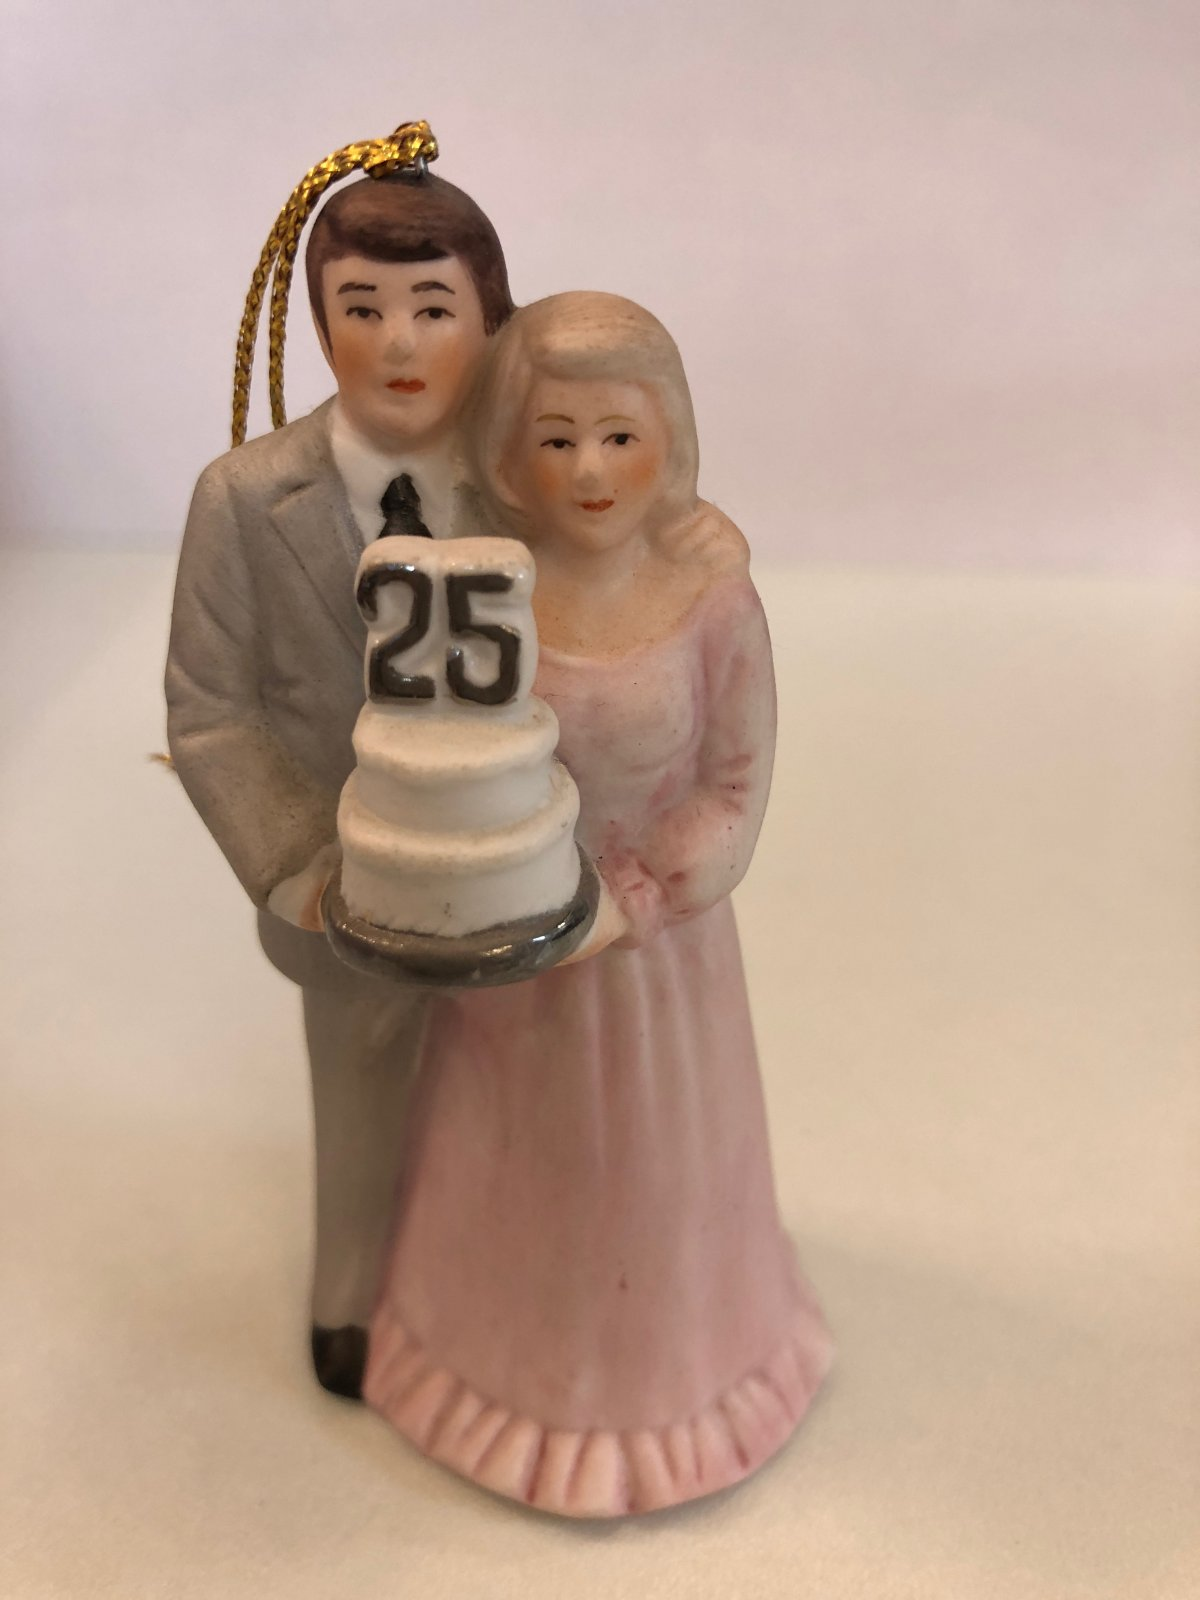 25th Anniversary Couple Porcelain Cake Topper